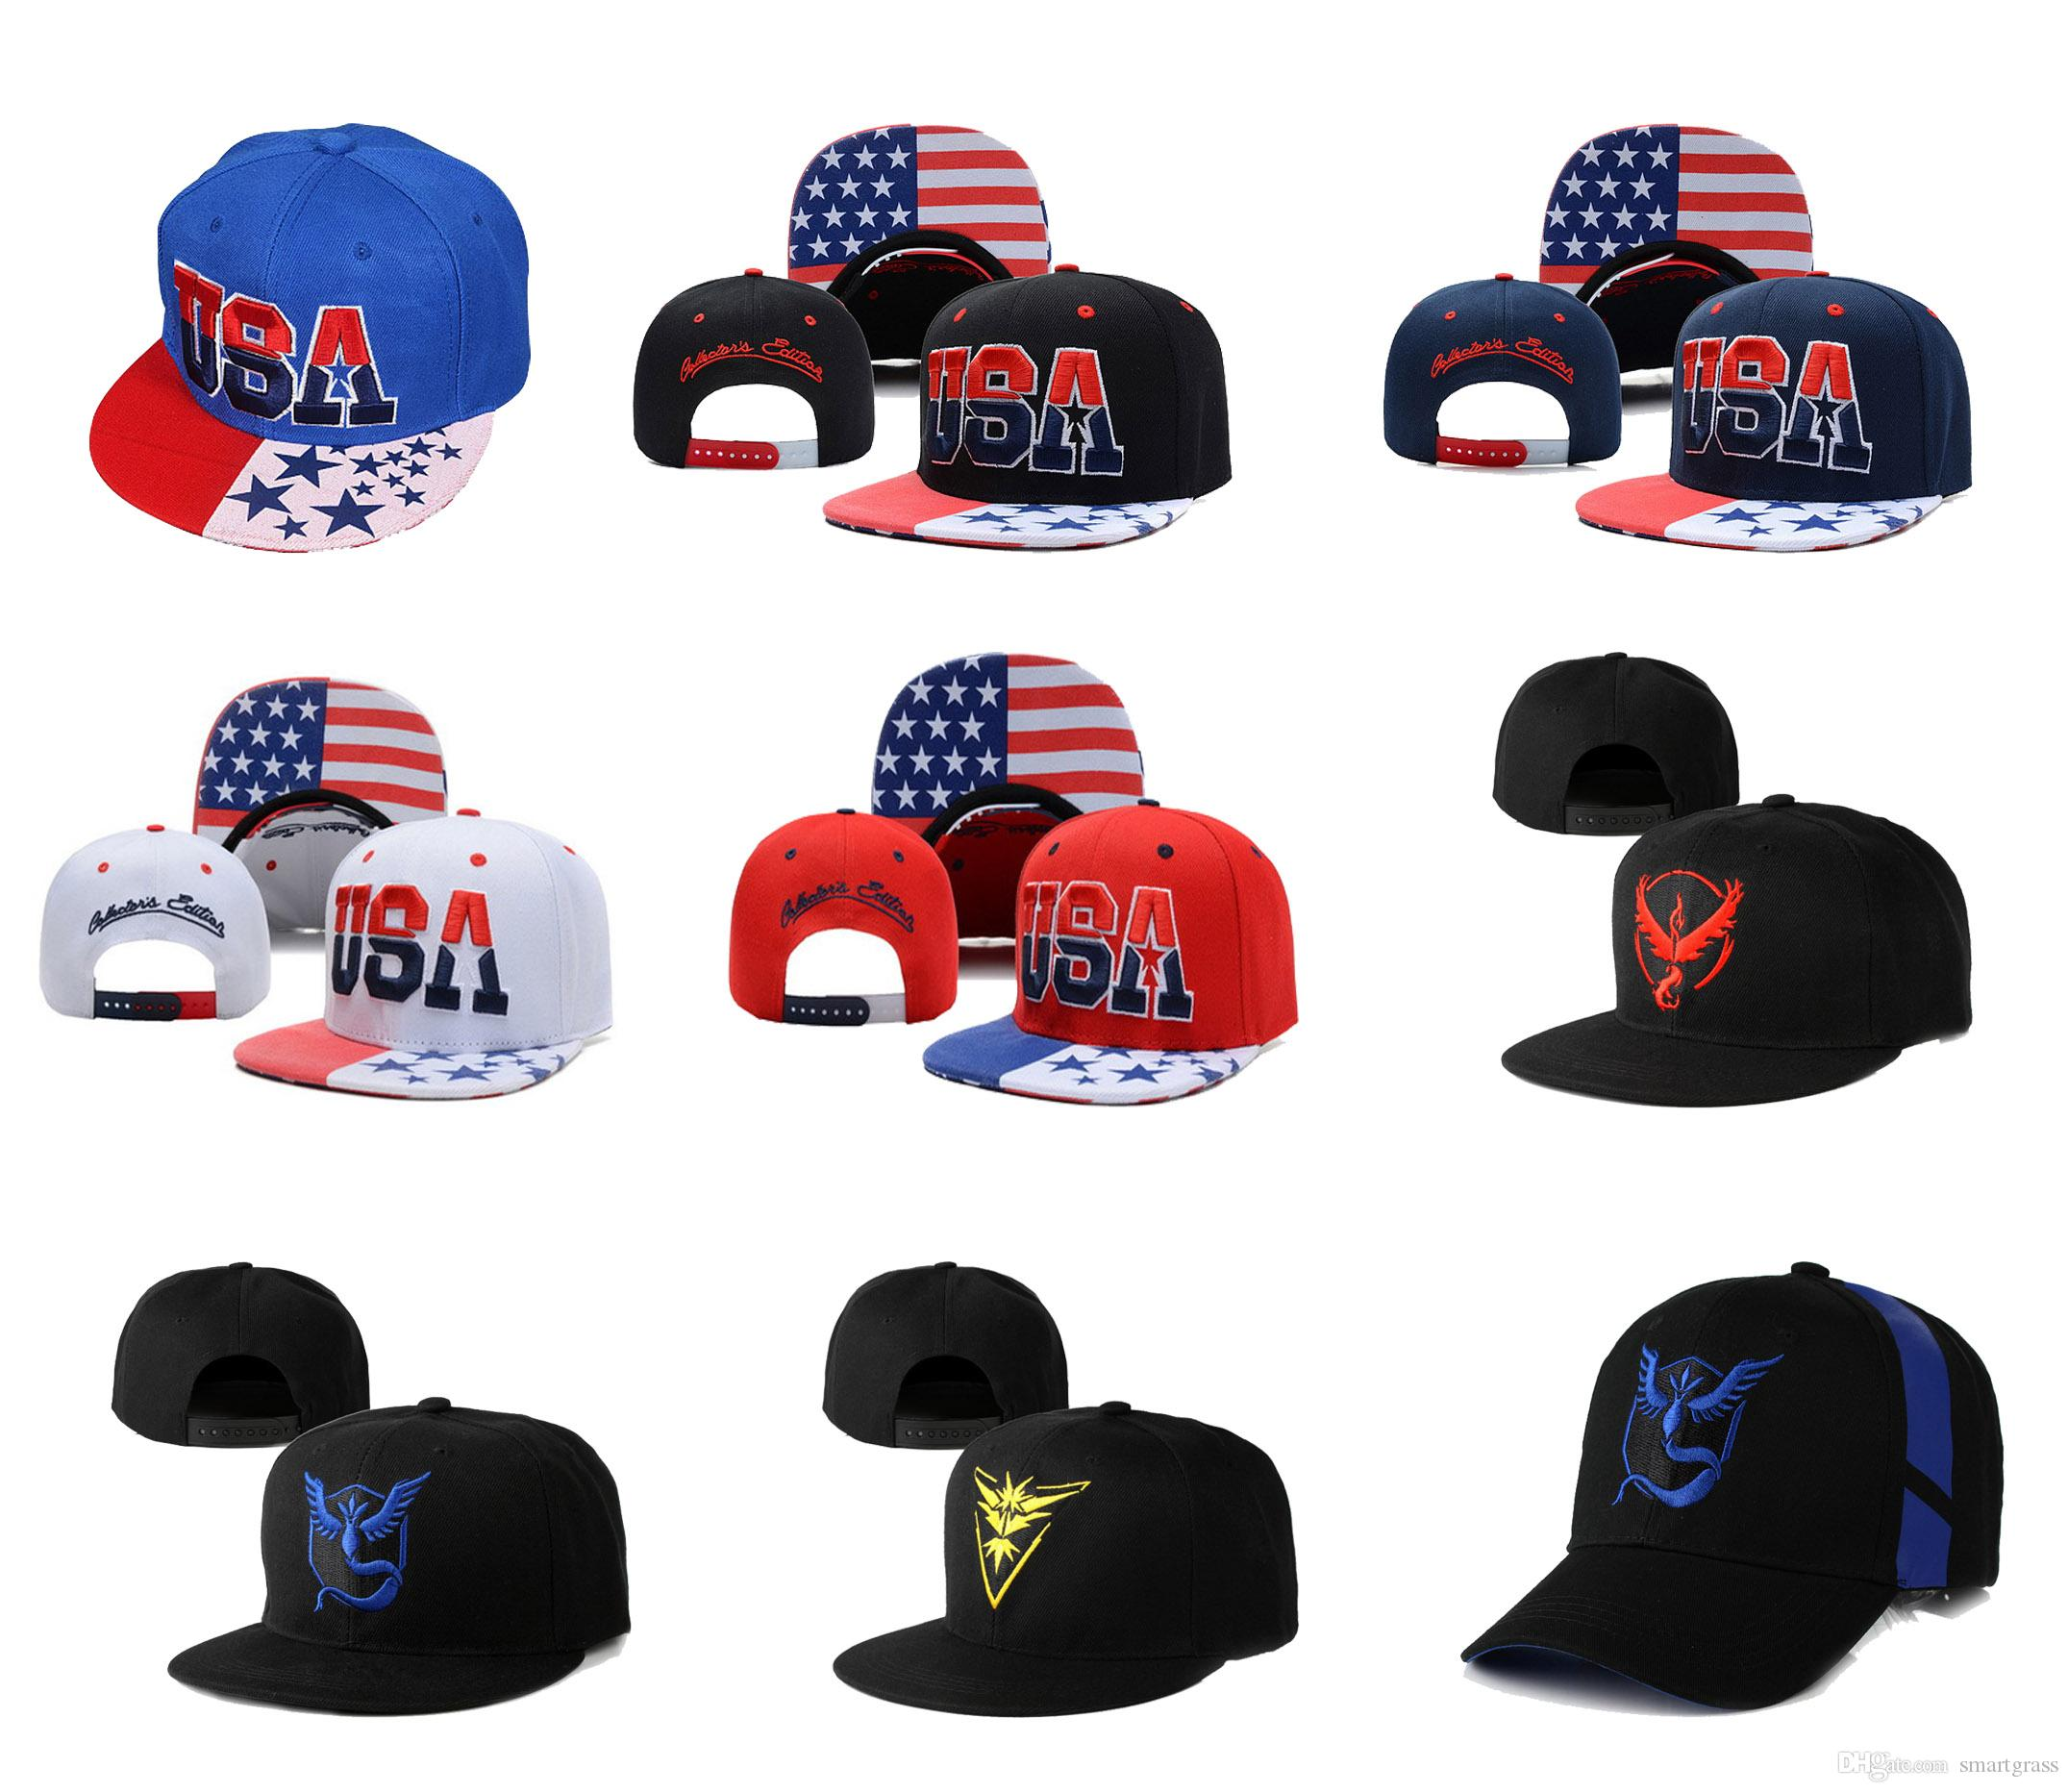 Unisex Ball Caps Snapbacks Hats For Mens Womens Designer Adjustable Baseball  Caps Choose Freely Drop Shipping Compton Cap Baseball Caps For Women From  ... 2d709f27cab